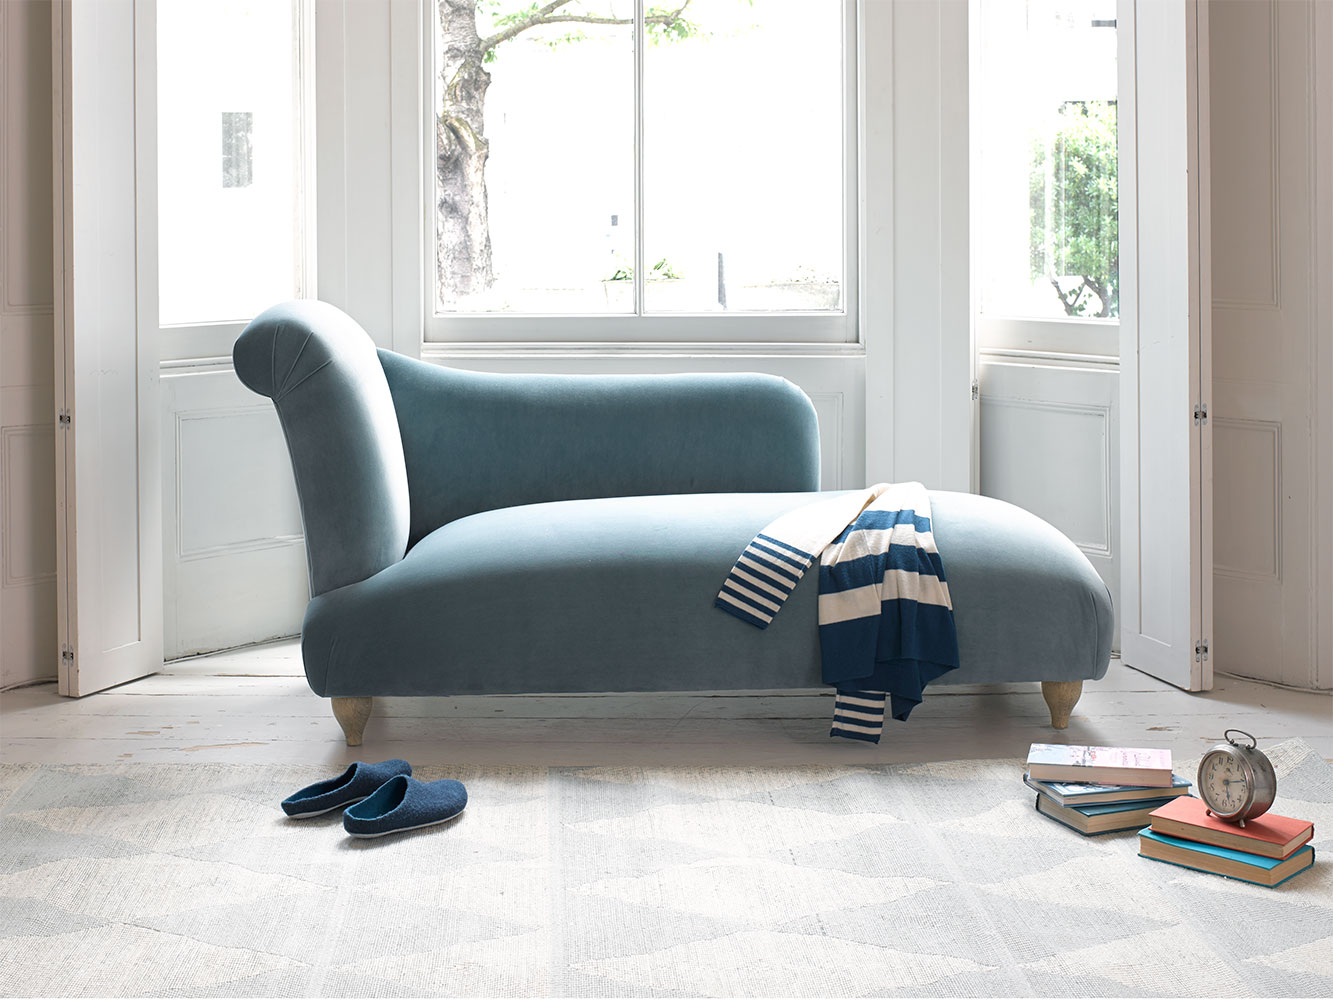 Picture of: Bronte Handmade Chaise Longue Loaf